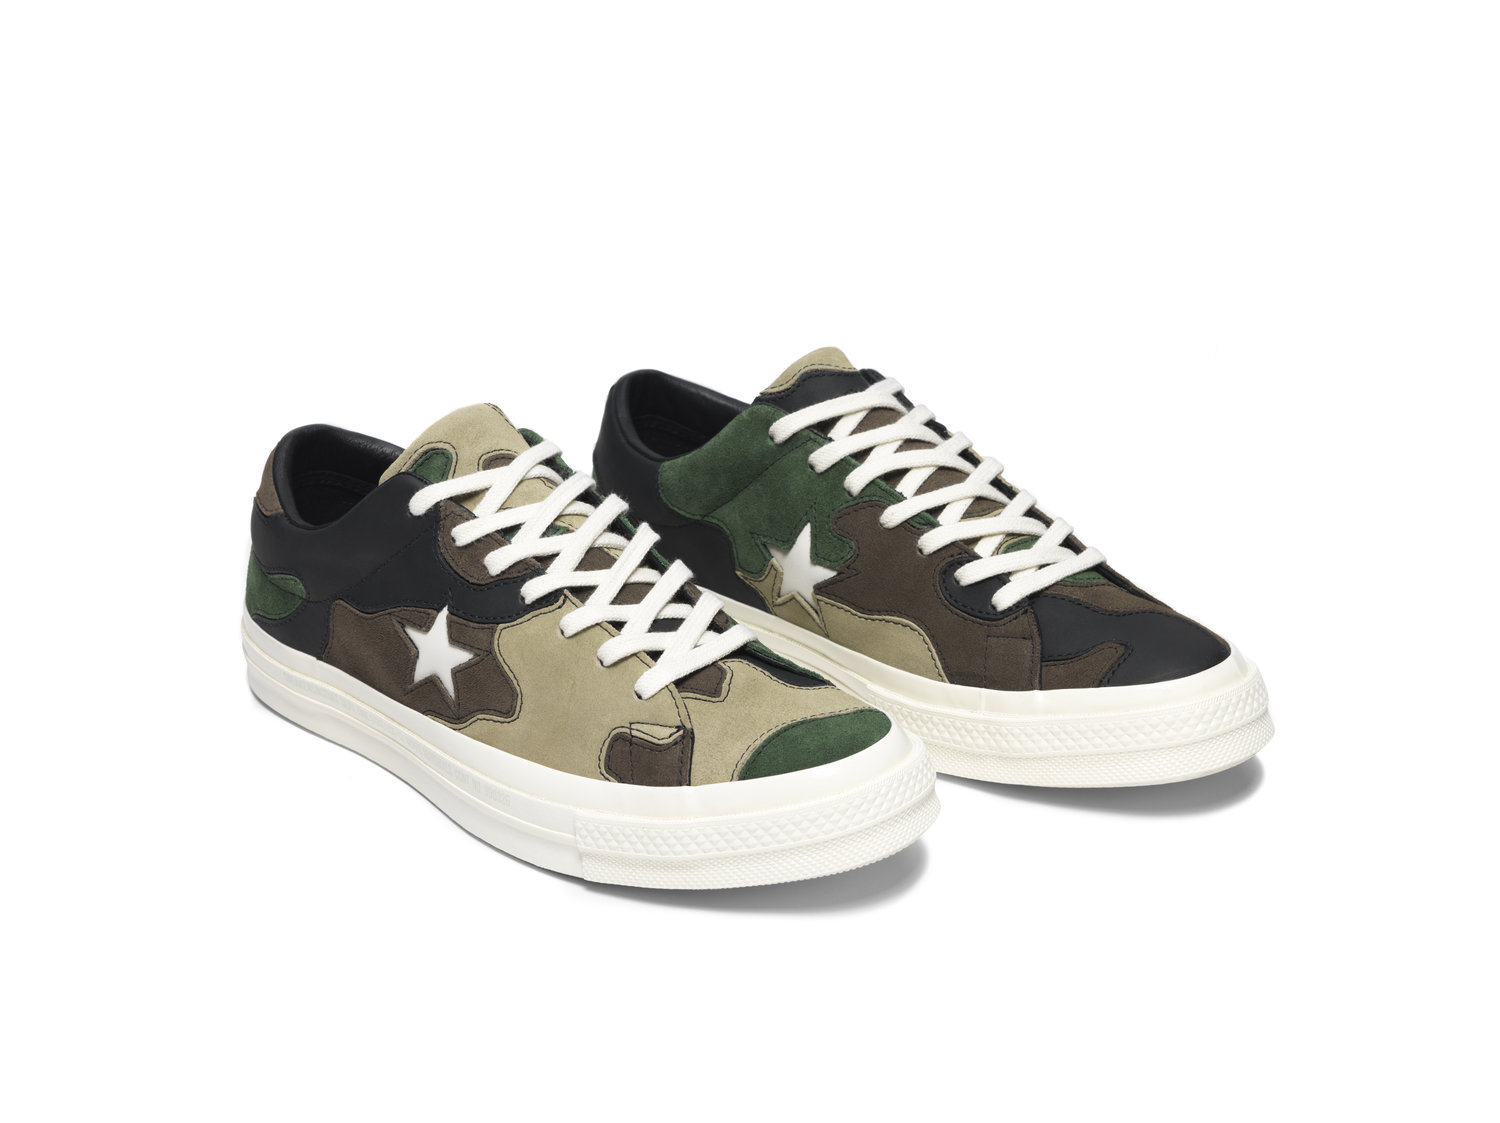 f14be9821822 Converse x Sneakersnstuff One Star Ox in Camo — MAJOR